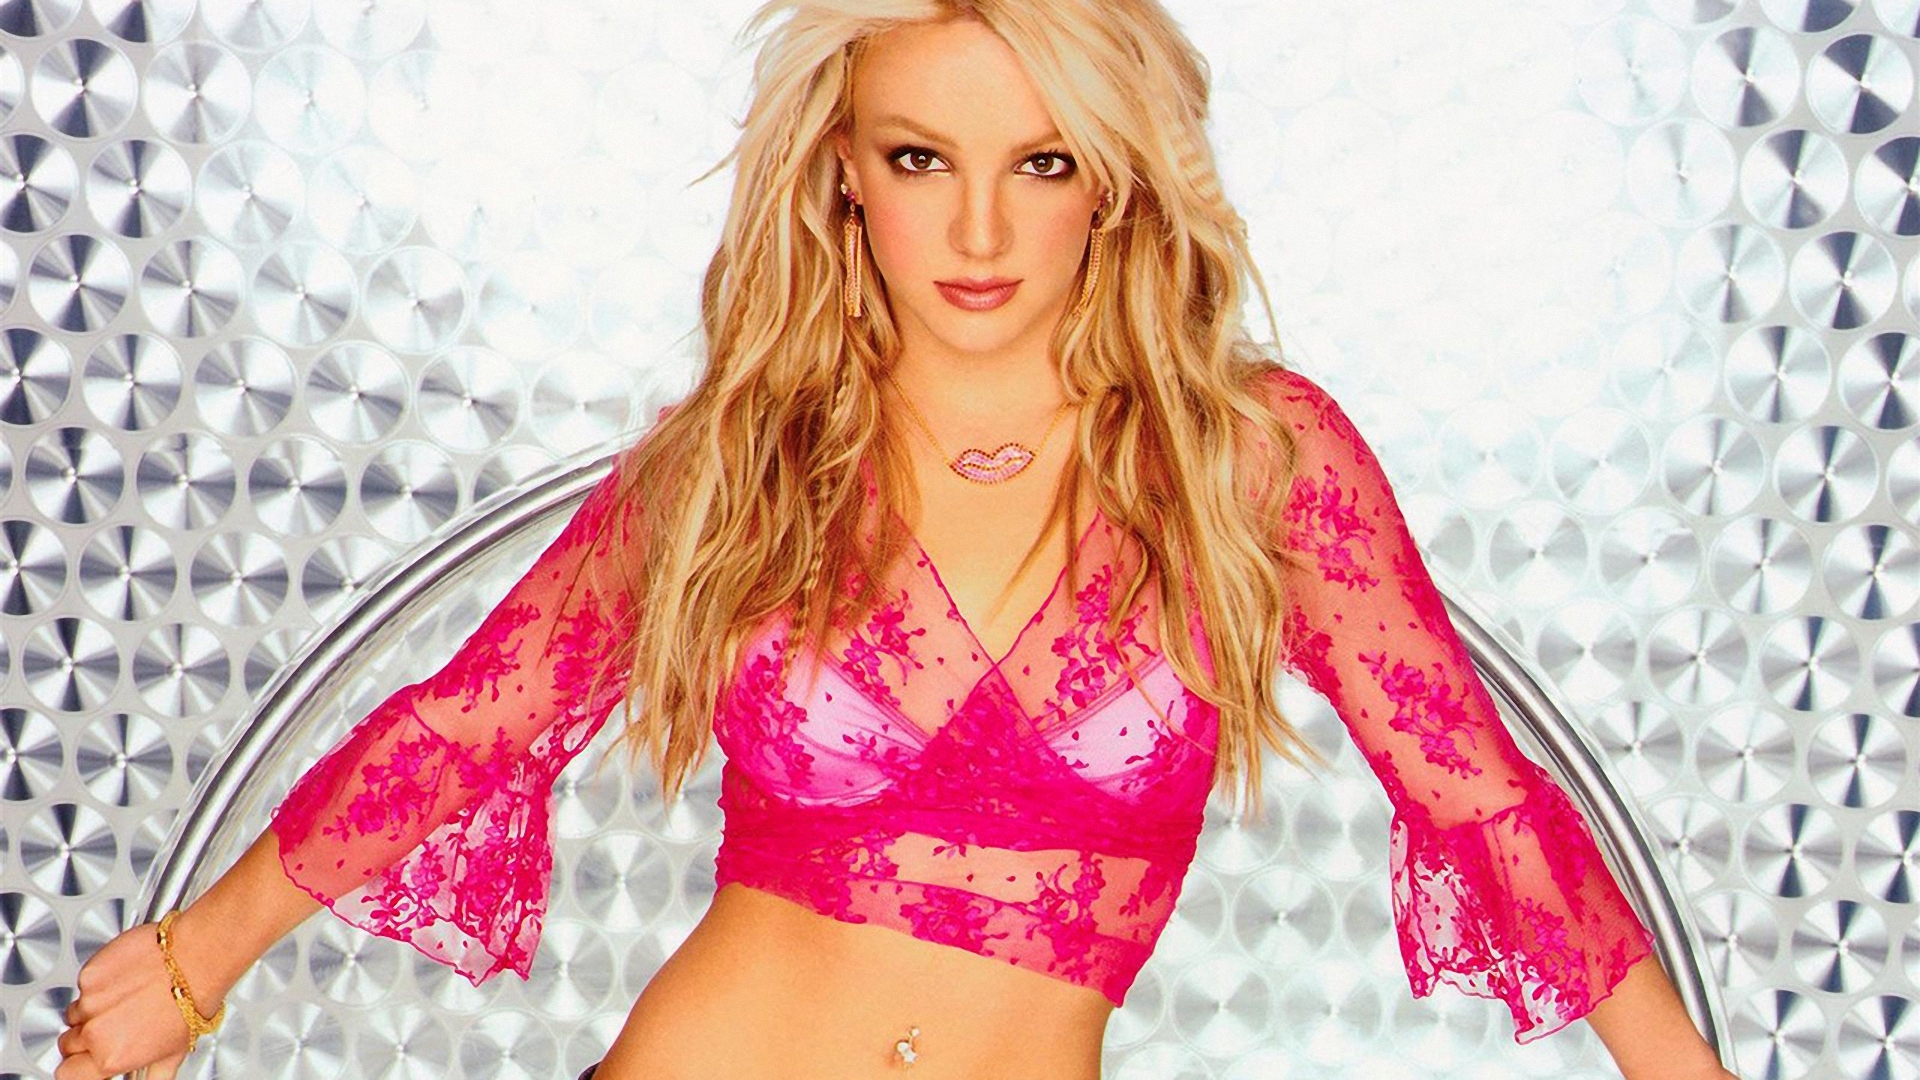 Download Wallpaper 1920x1080 Britney Spears Clothes